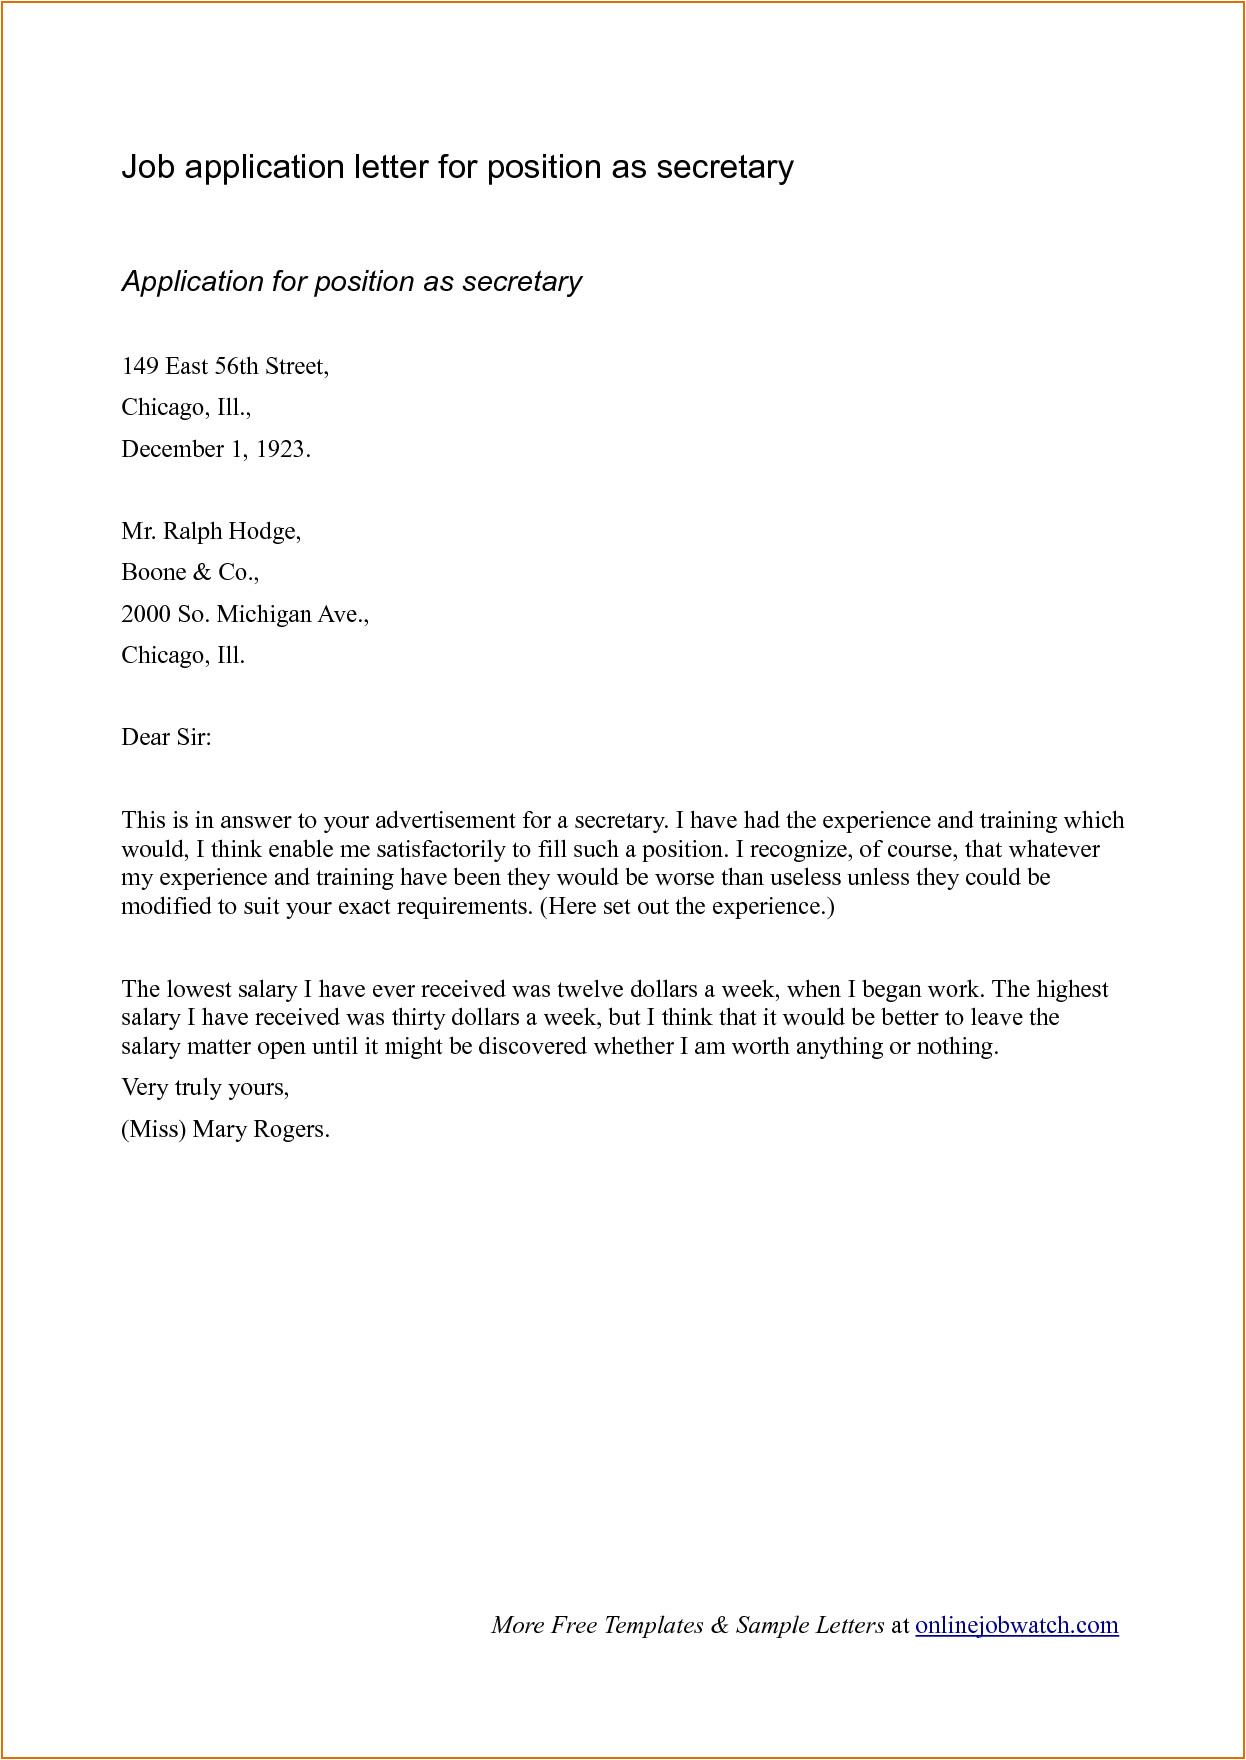 How to Draft A Cover Letter for Job Application Sample Cover Letter format for Job Application